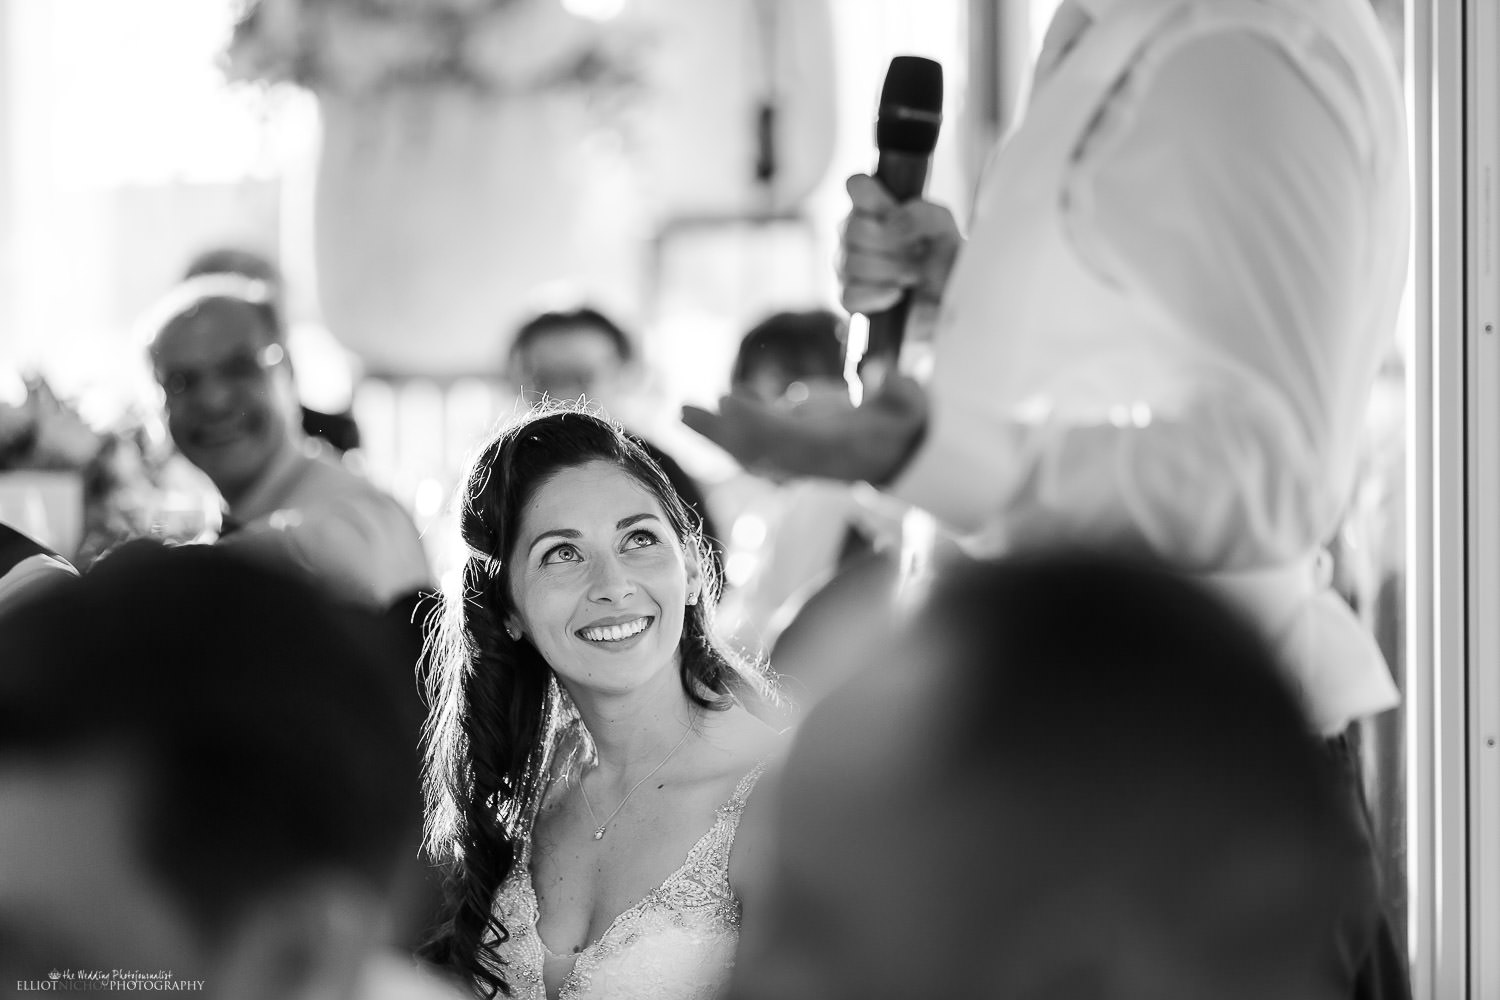 Bride listens to her groom's wedding speech during their destination wedding reception. Photo by North East based Elliot Nichol Photography.